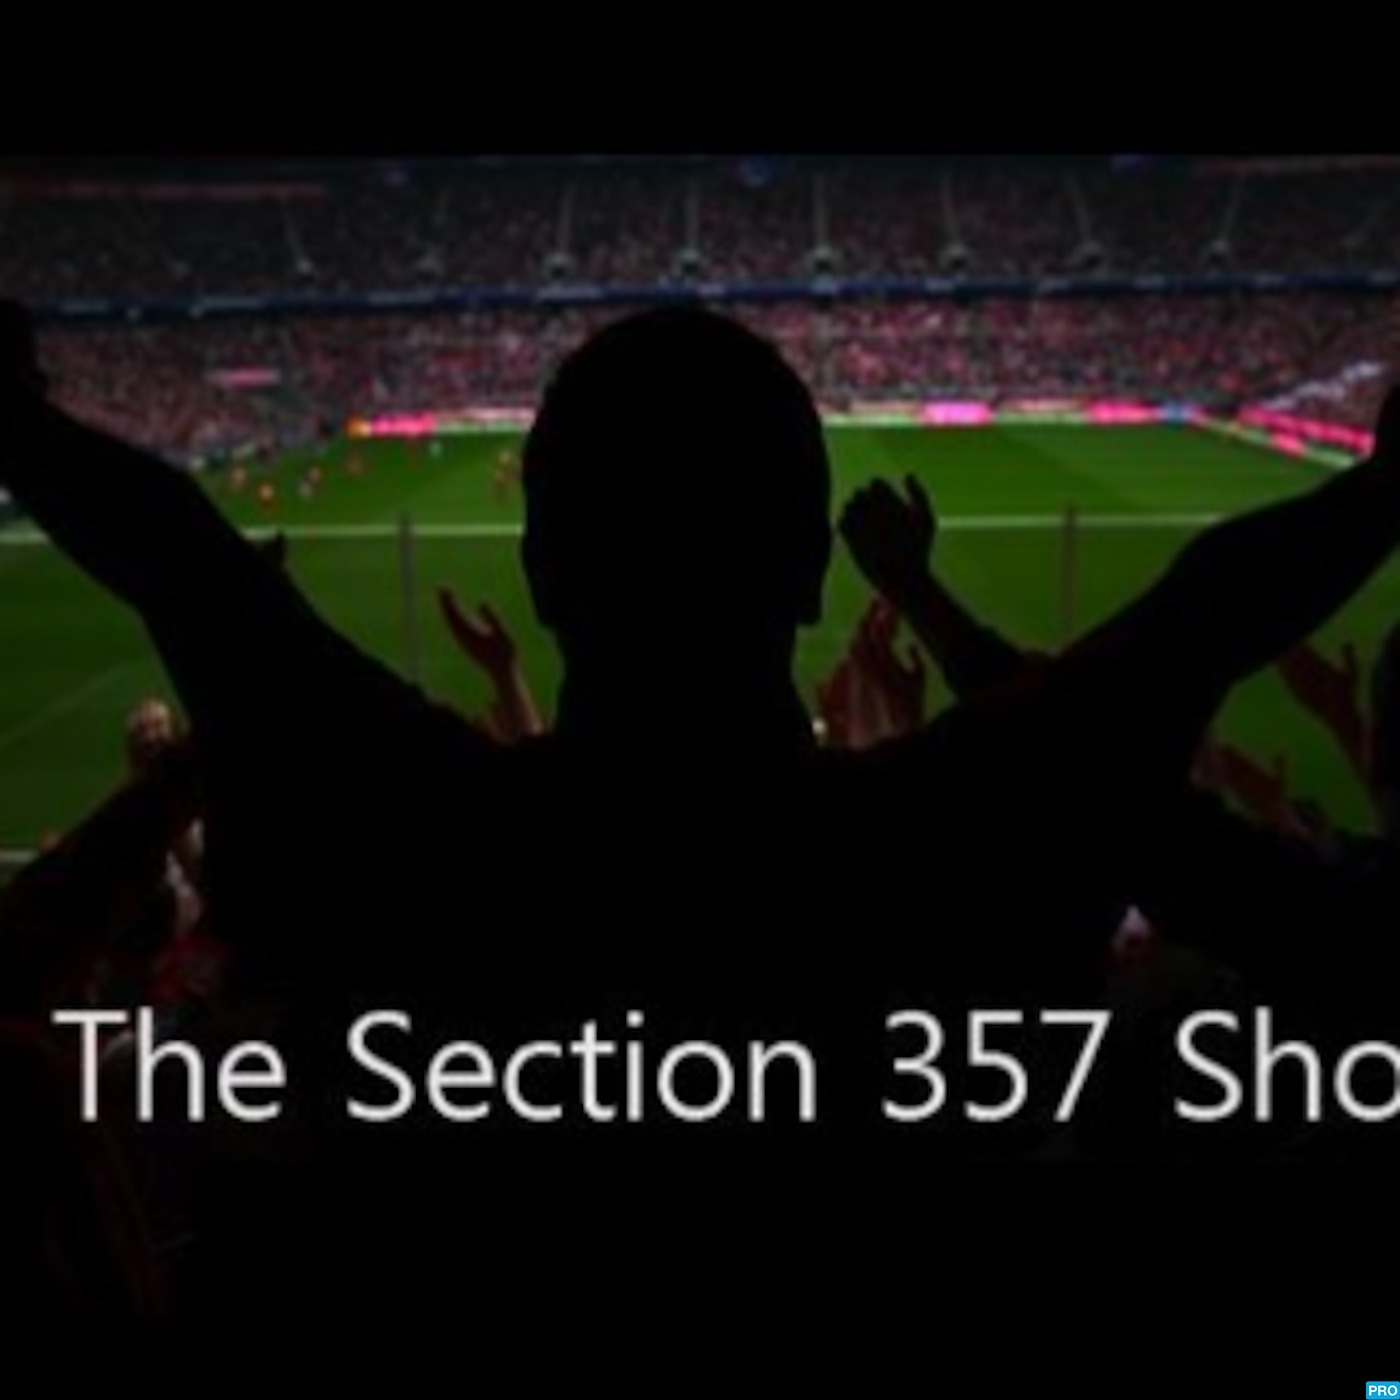 The Section 357 Show: The Ball Street Journal